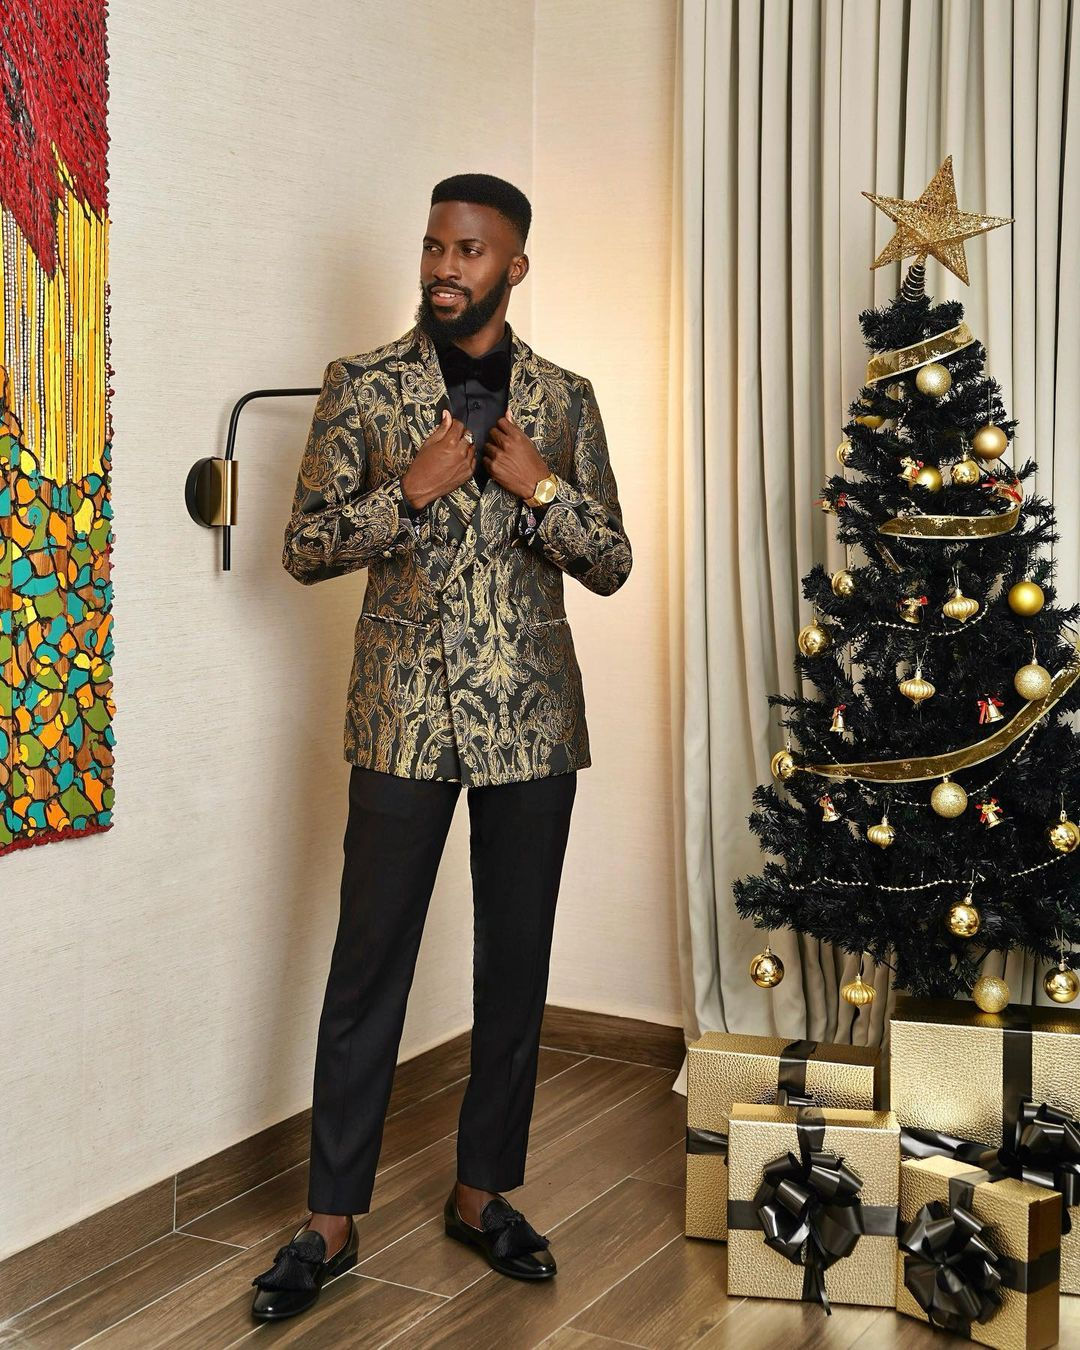 festive-2020-dazzling-outfits-ideas-style-rave